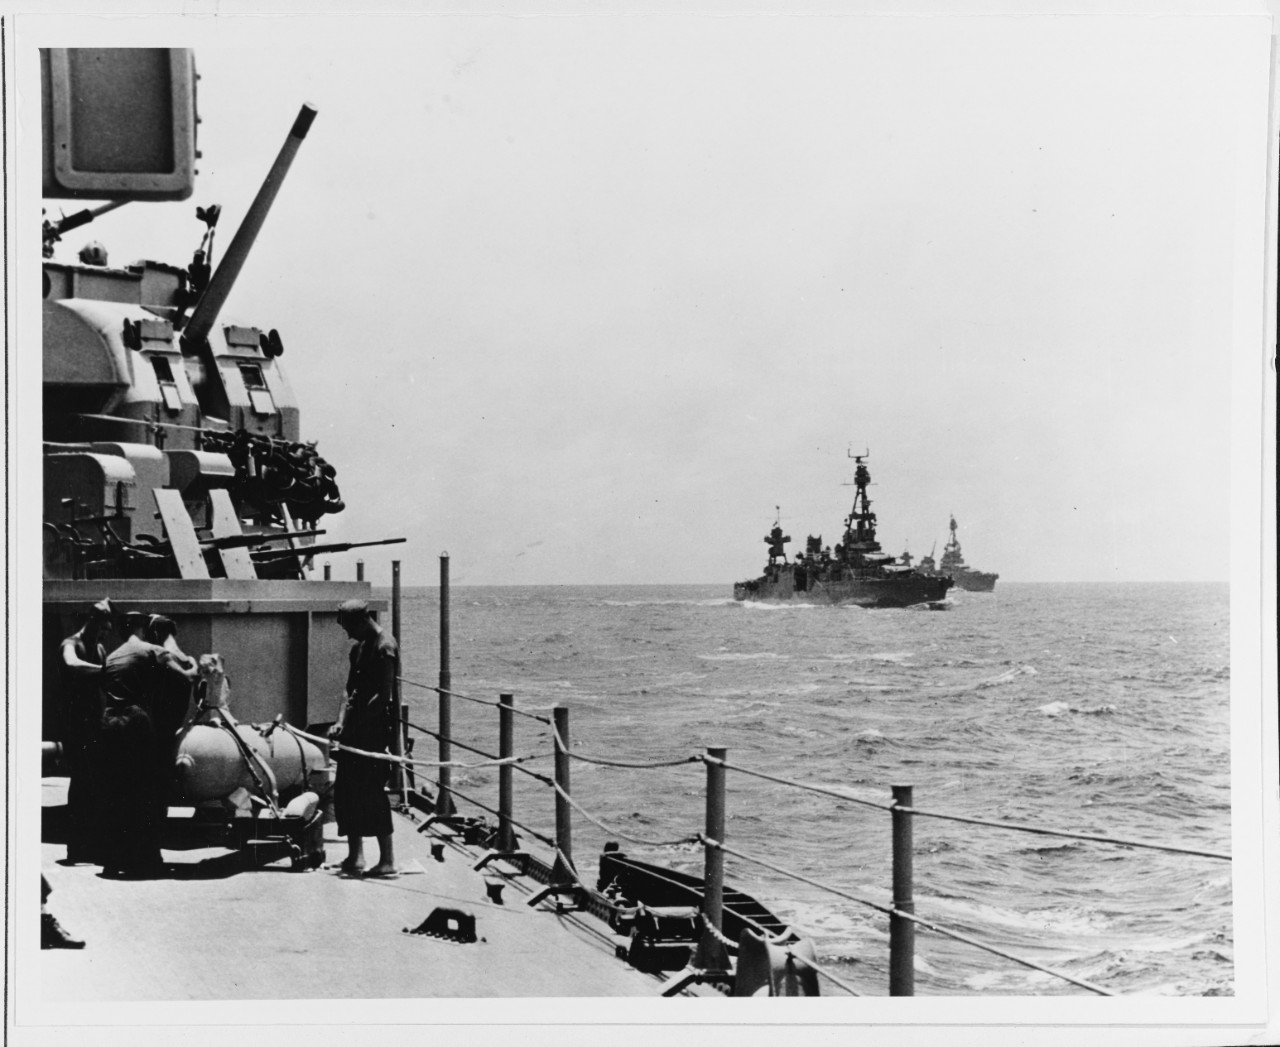 A photographer on board Wichita captures a shot of Chicago (right center) and Louisville (in the distance) as they steam to fight the Japanese during the Battle of Rennell Island, 29 January 1943. Note some of Wichita's 5-inch and 20 millimeter guns behind the men working on a paravane. (U.S. Navy Photograph 80-G-38824, National Archives and Records Administration, Still Pictures Branch, College Park, Md.)